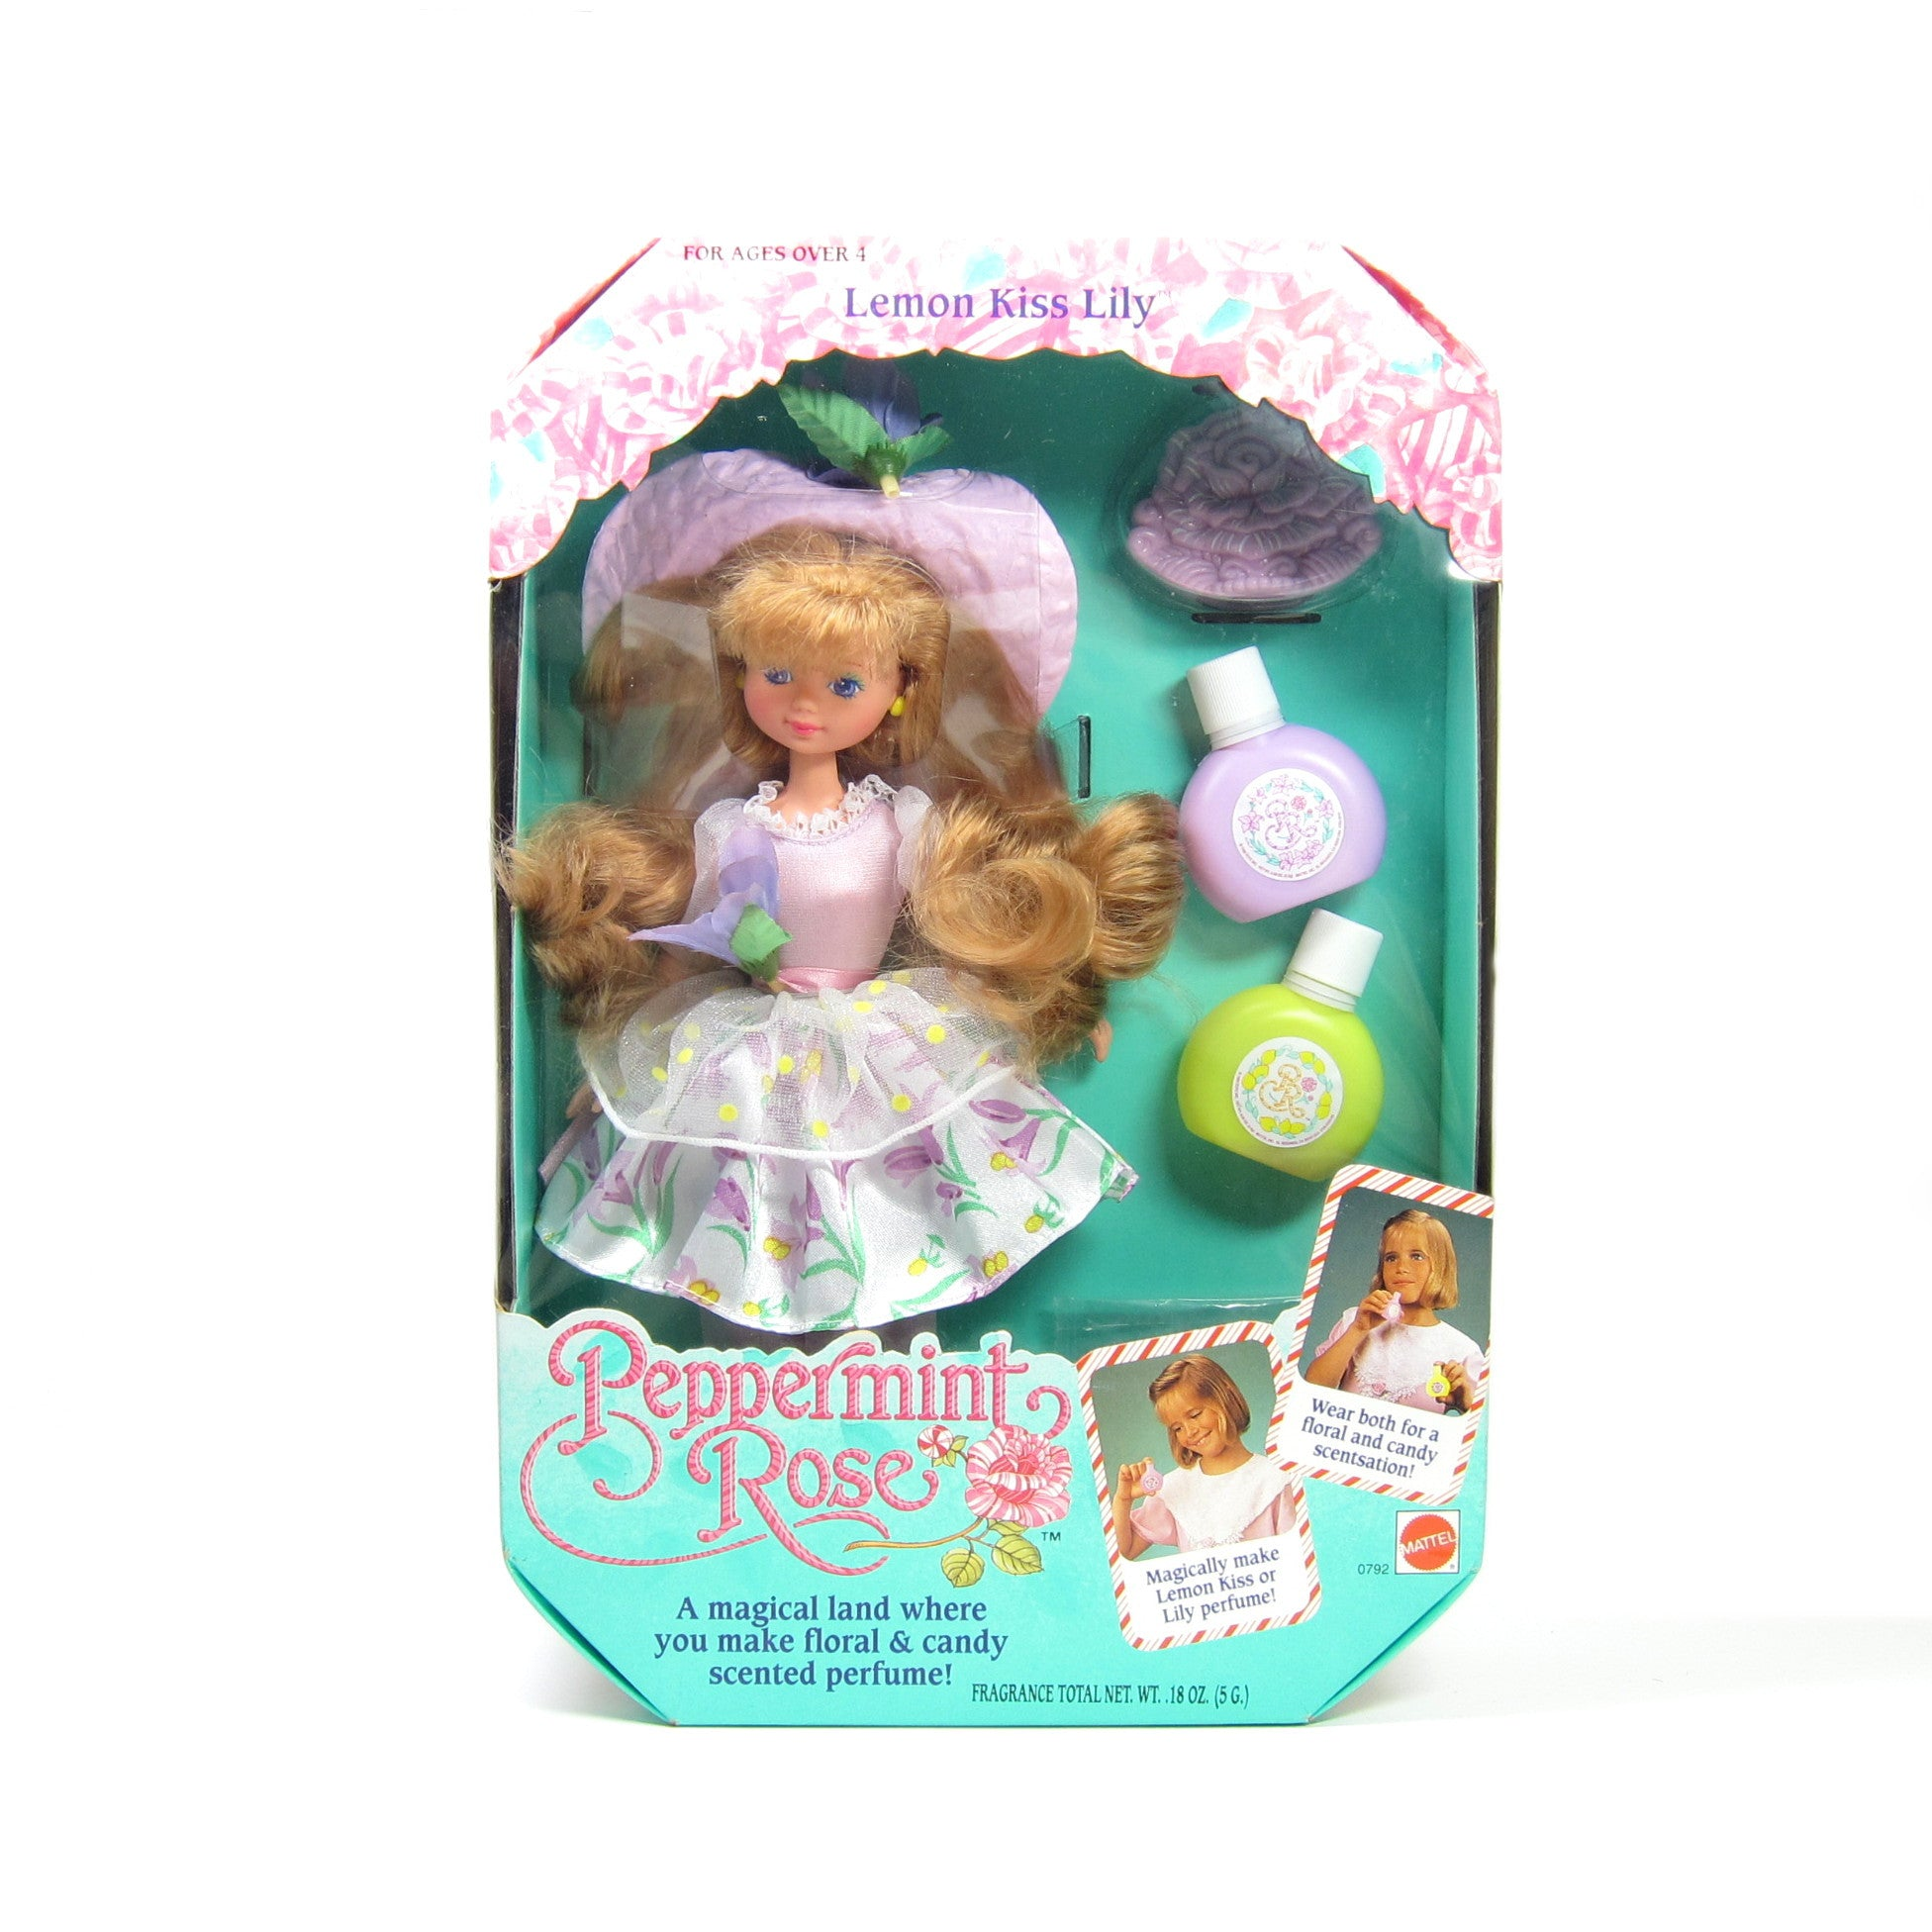 Lemon Kiss Lily Peppermint Rose doll MIB